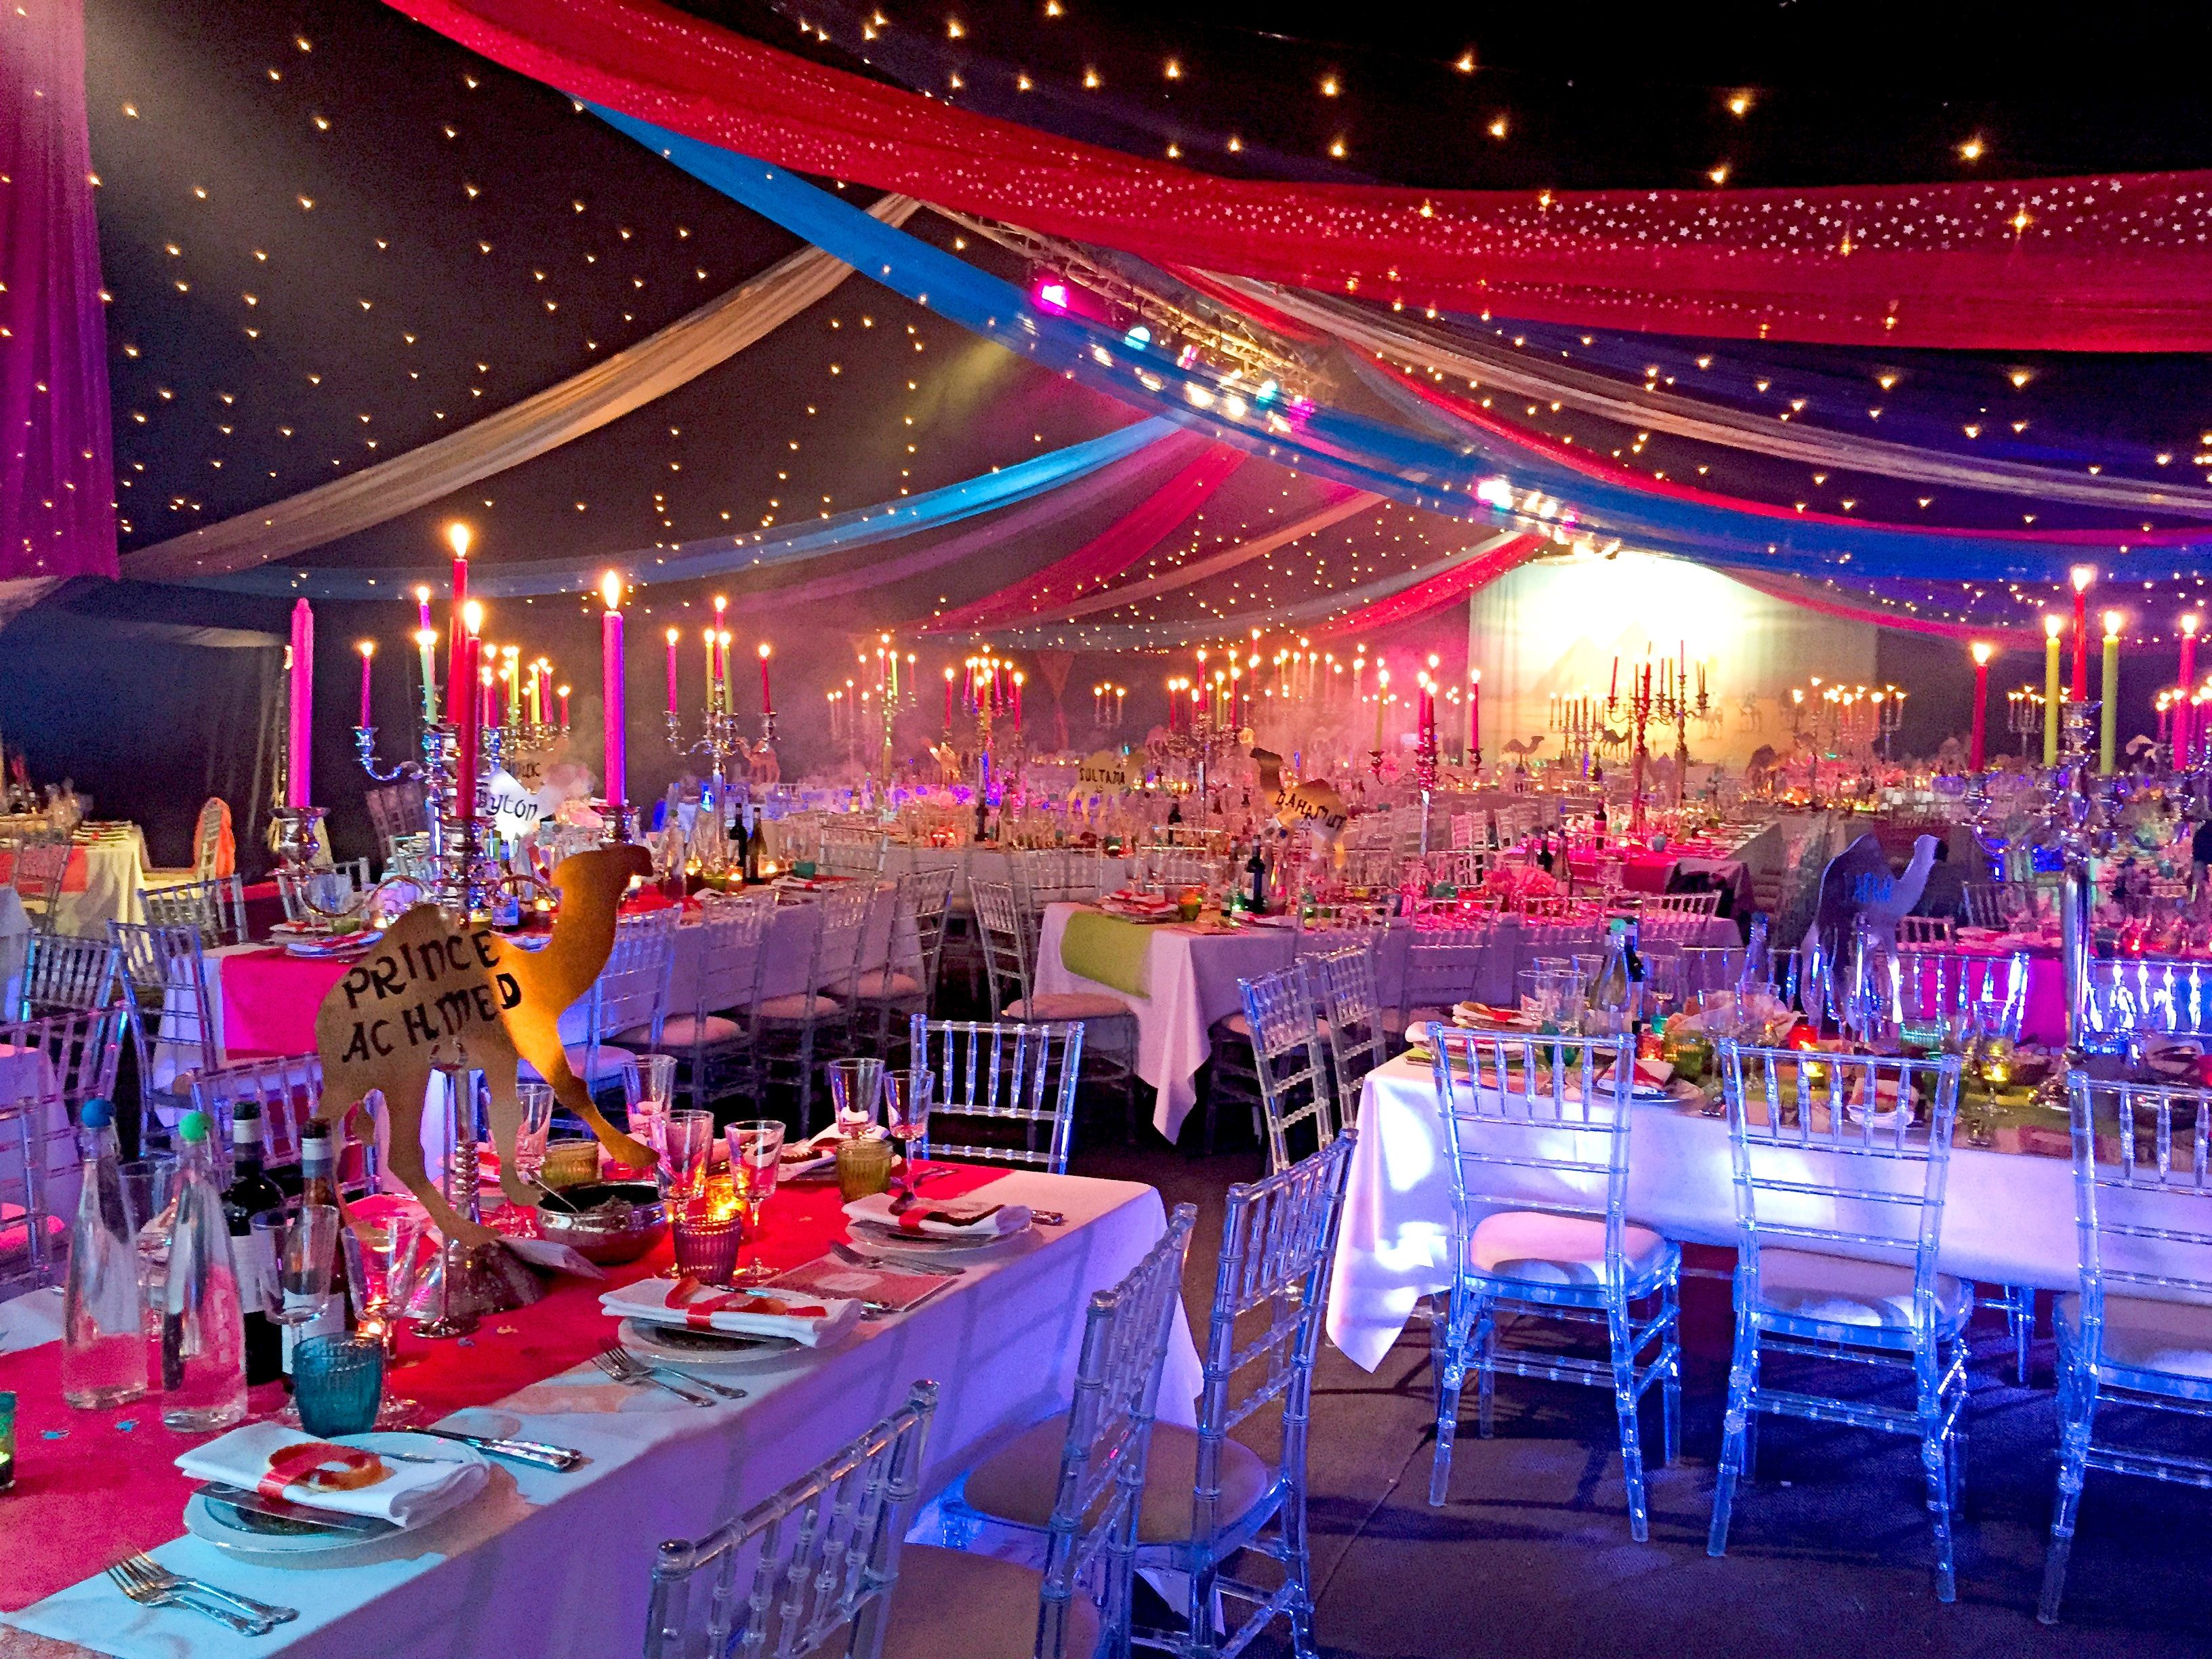 Bespoke Party Planners - Arabian Nights Theme Charity Ball ...